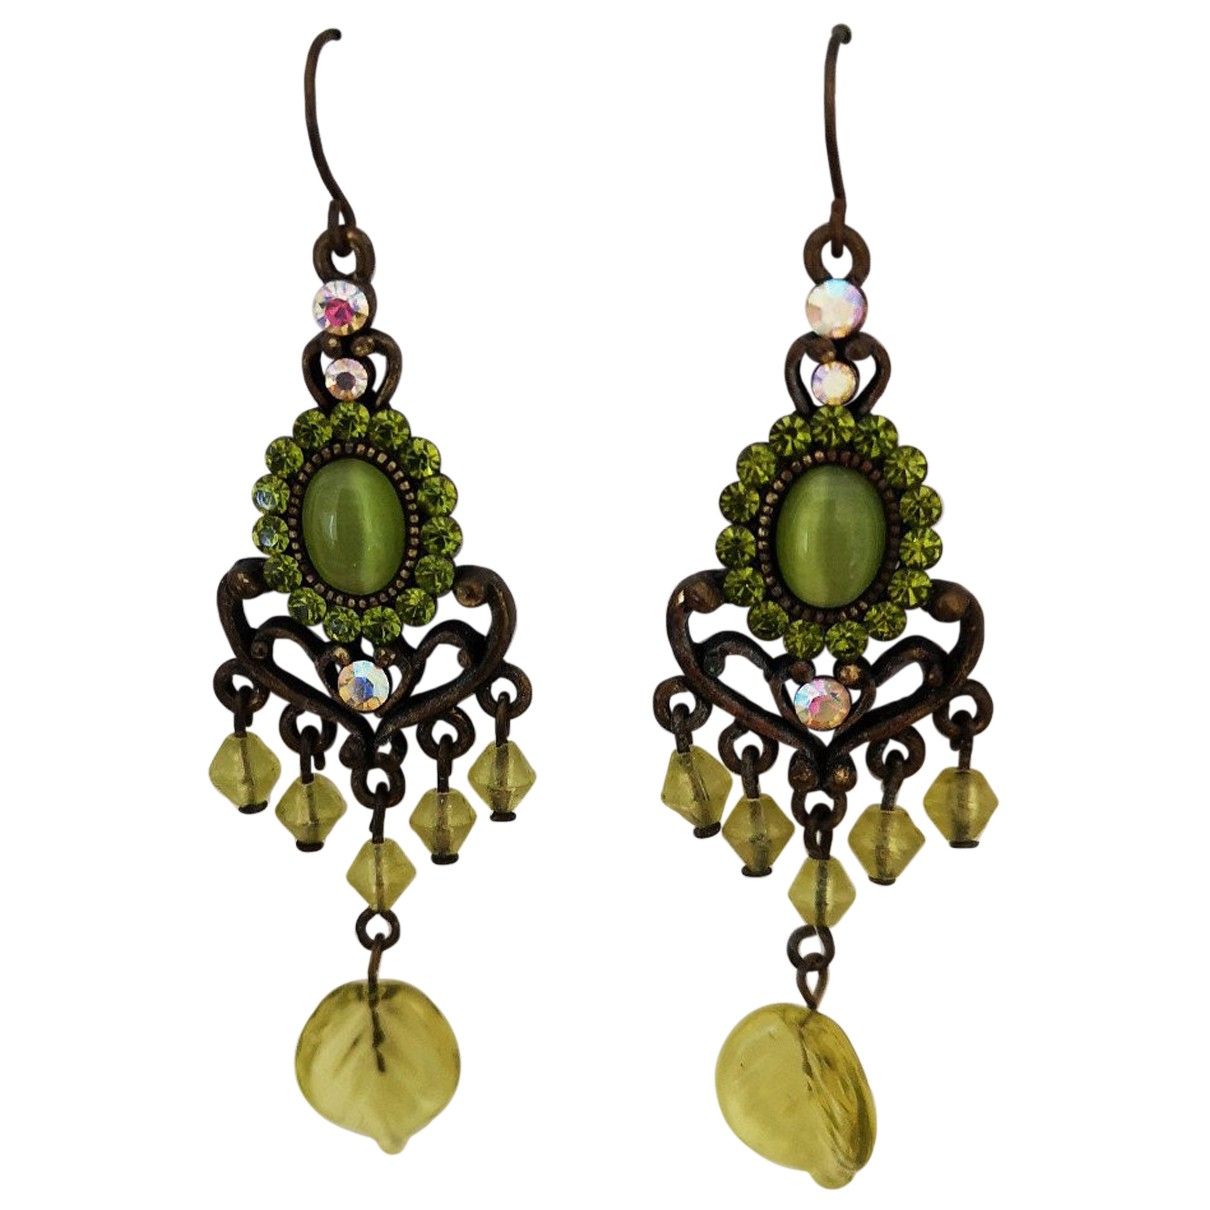 Non Signé / Unsigned N Green Metal Earrings for Women N